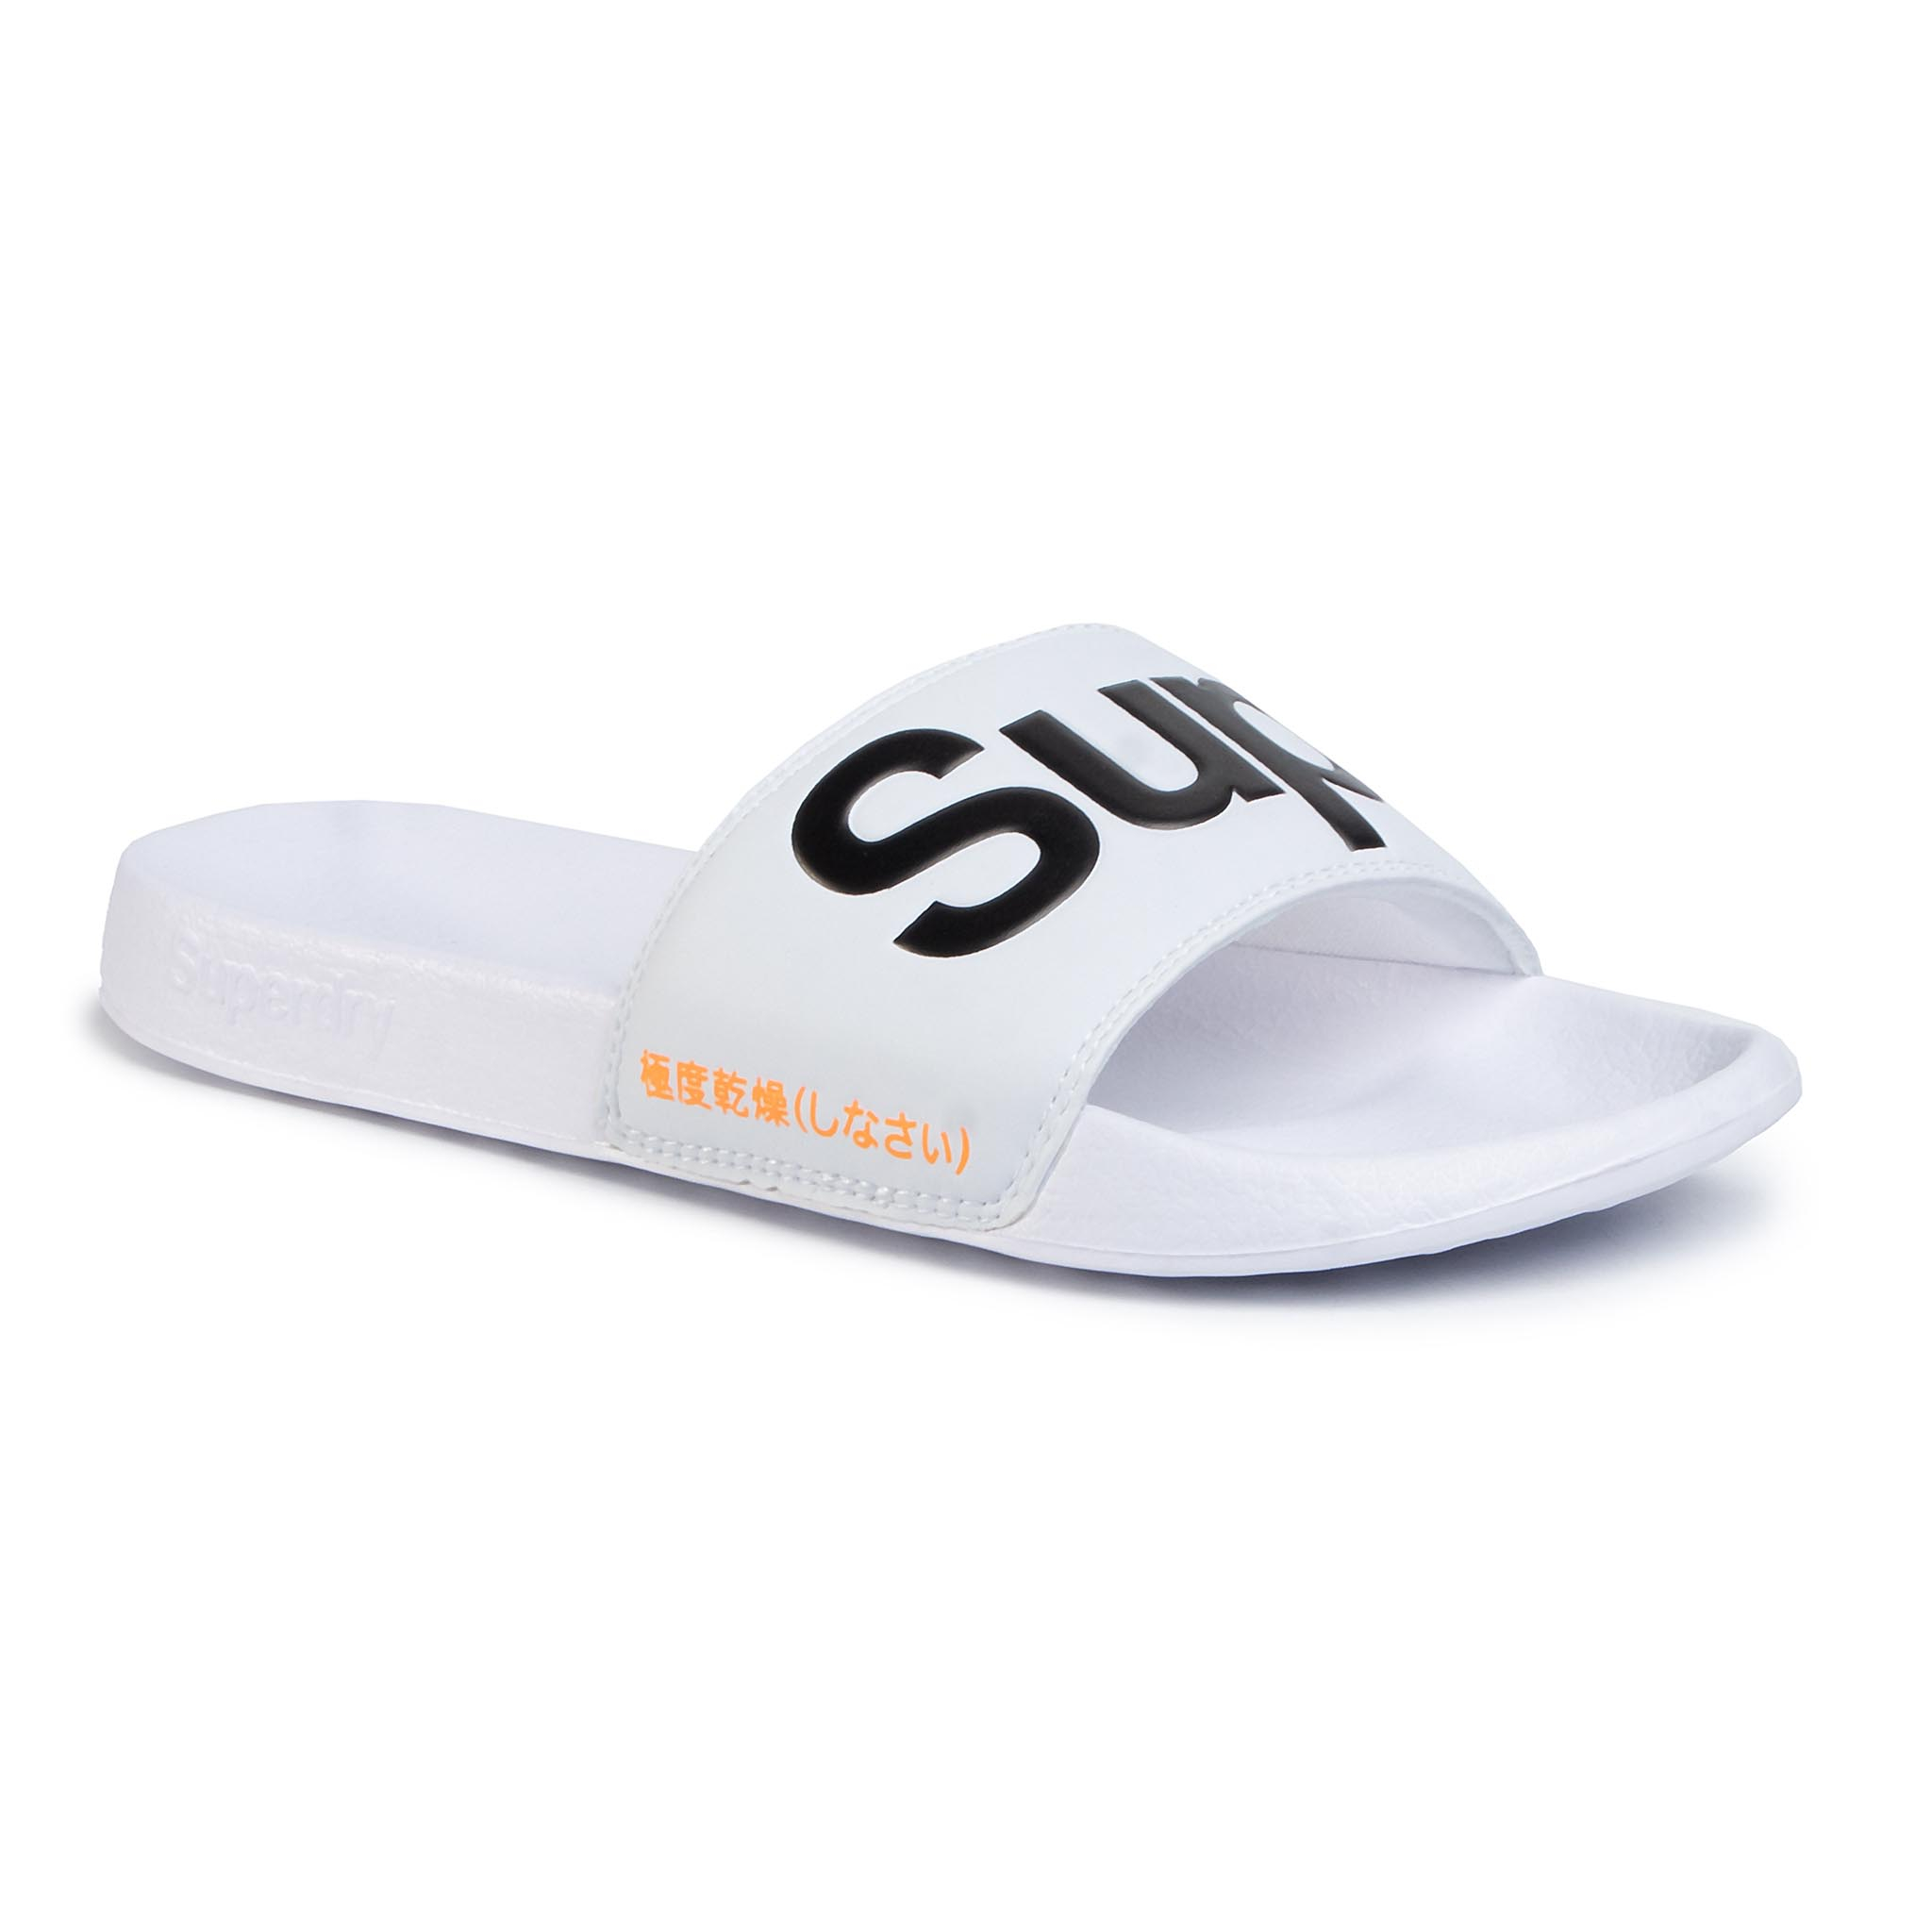 Șlapi Superdry - Classic Pool Slide Mf310008a Optic 01c imagine epantofi.ro 2021